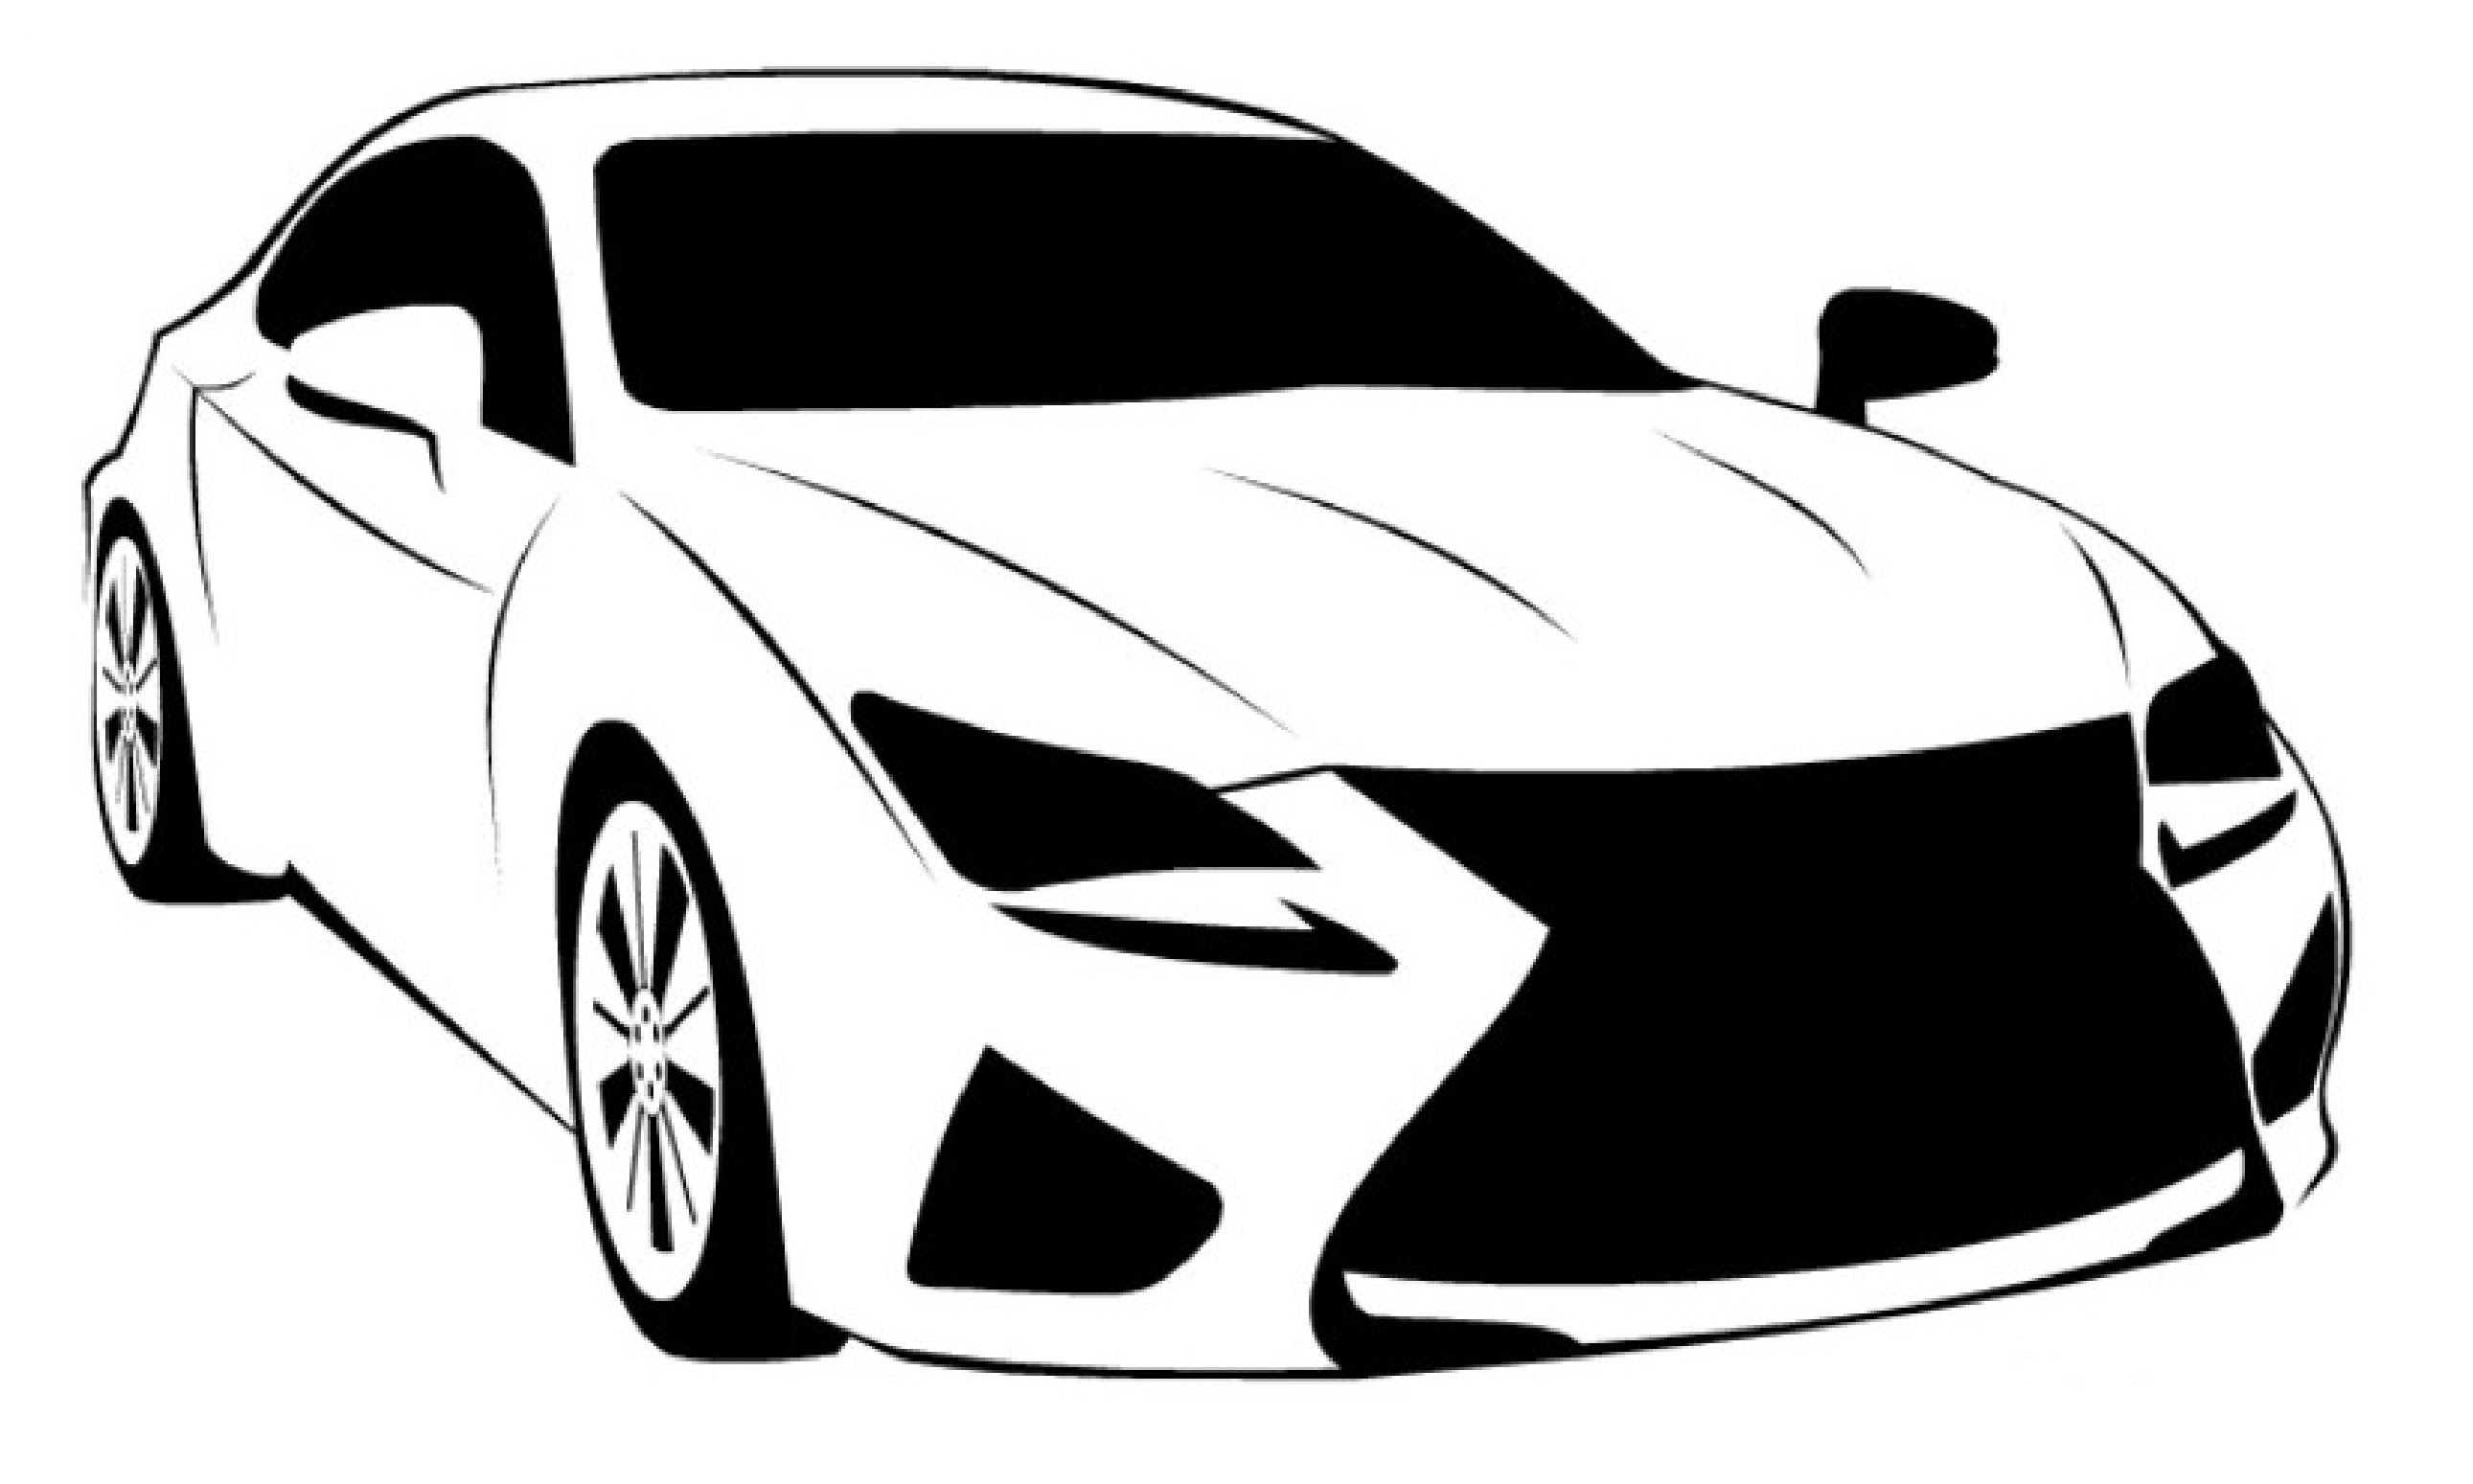 free car silhouette clip art - photo #44